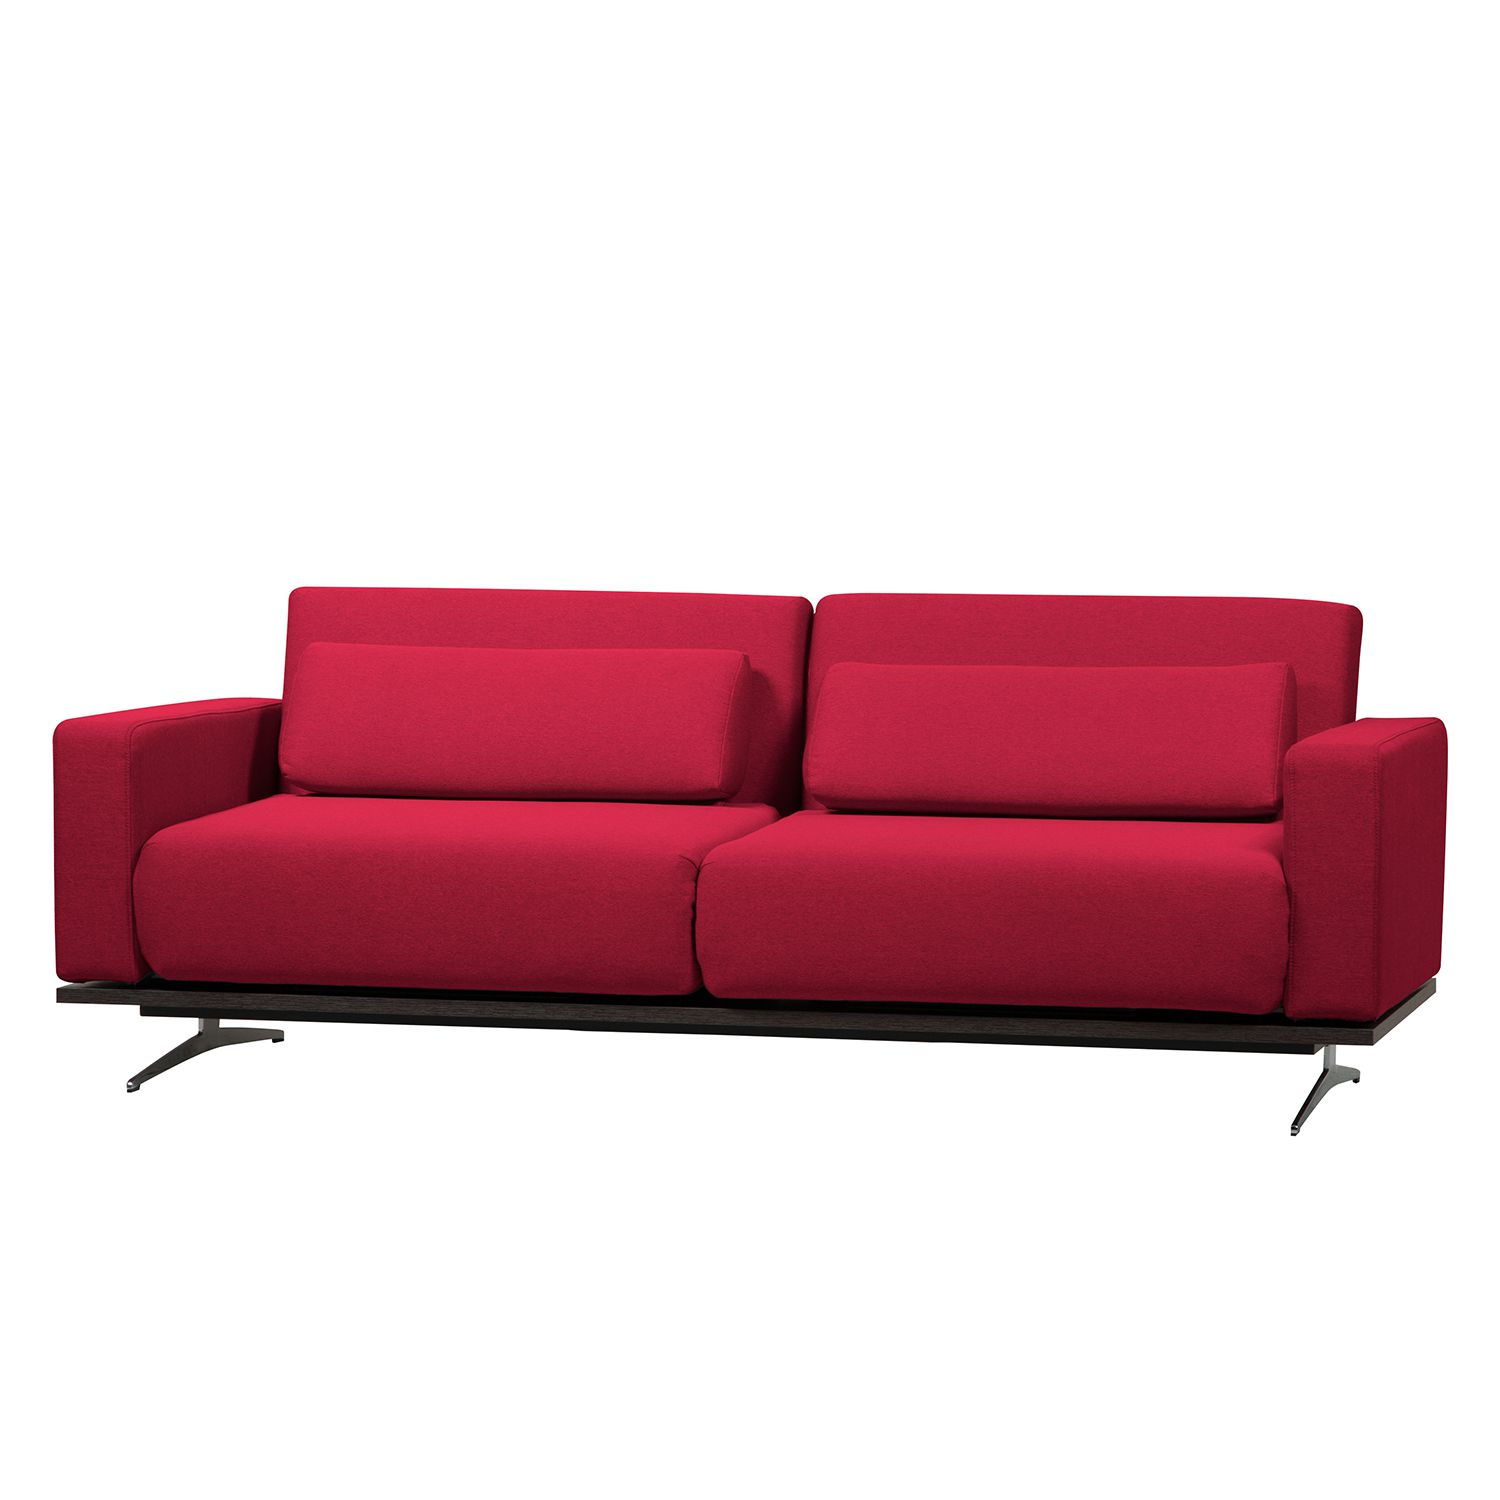 Schlafsofa Copperfield I - Webstoff - Stoff Zahira Rot